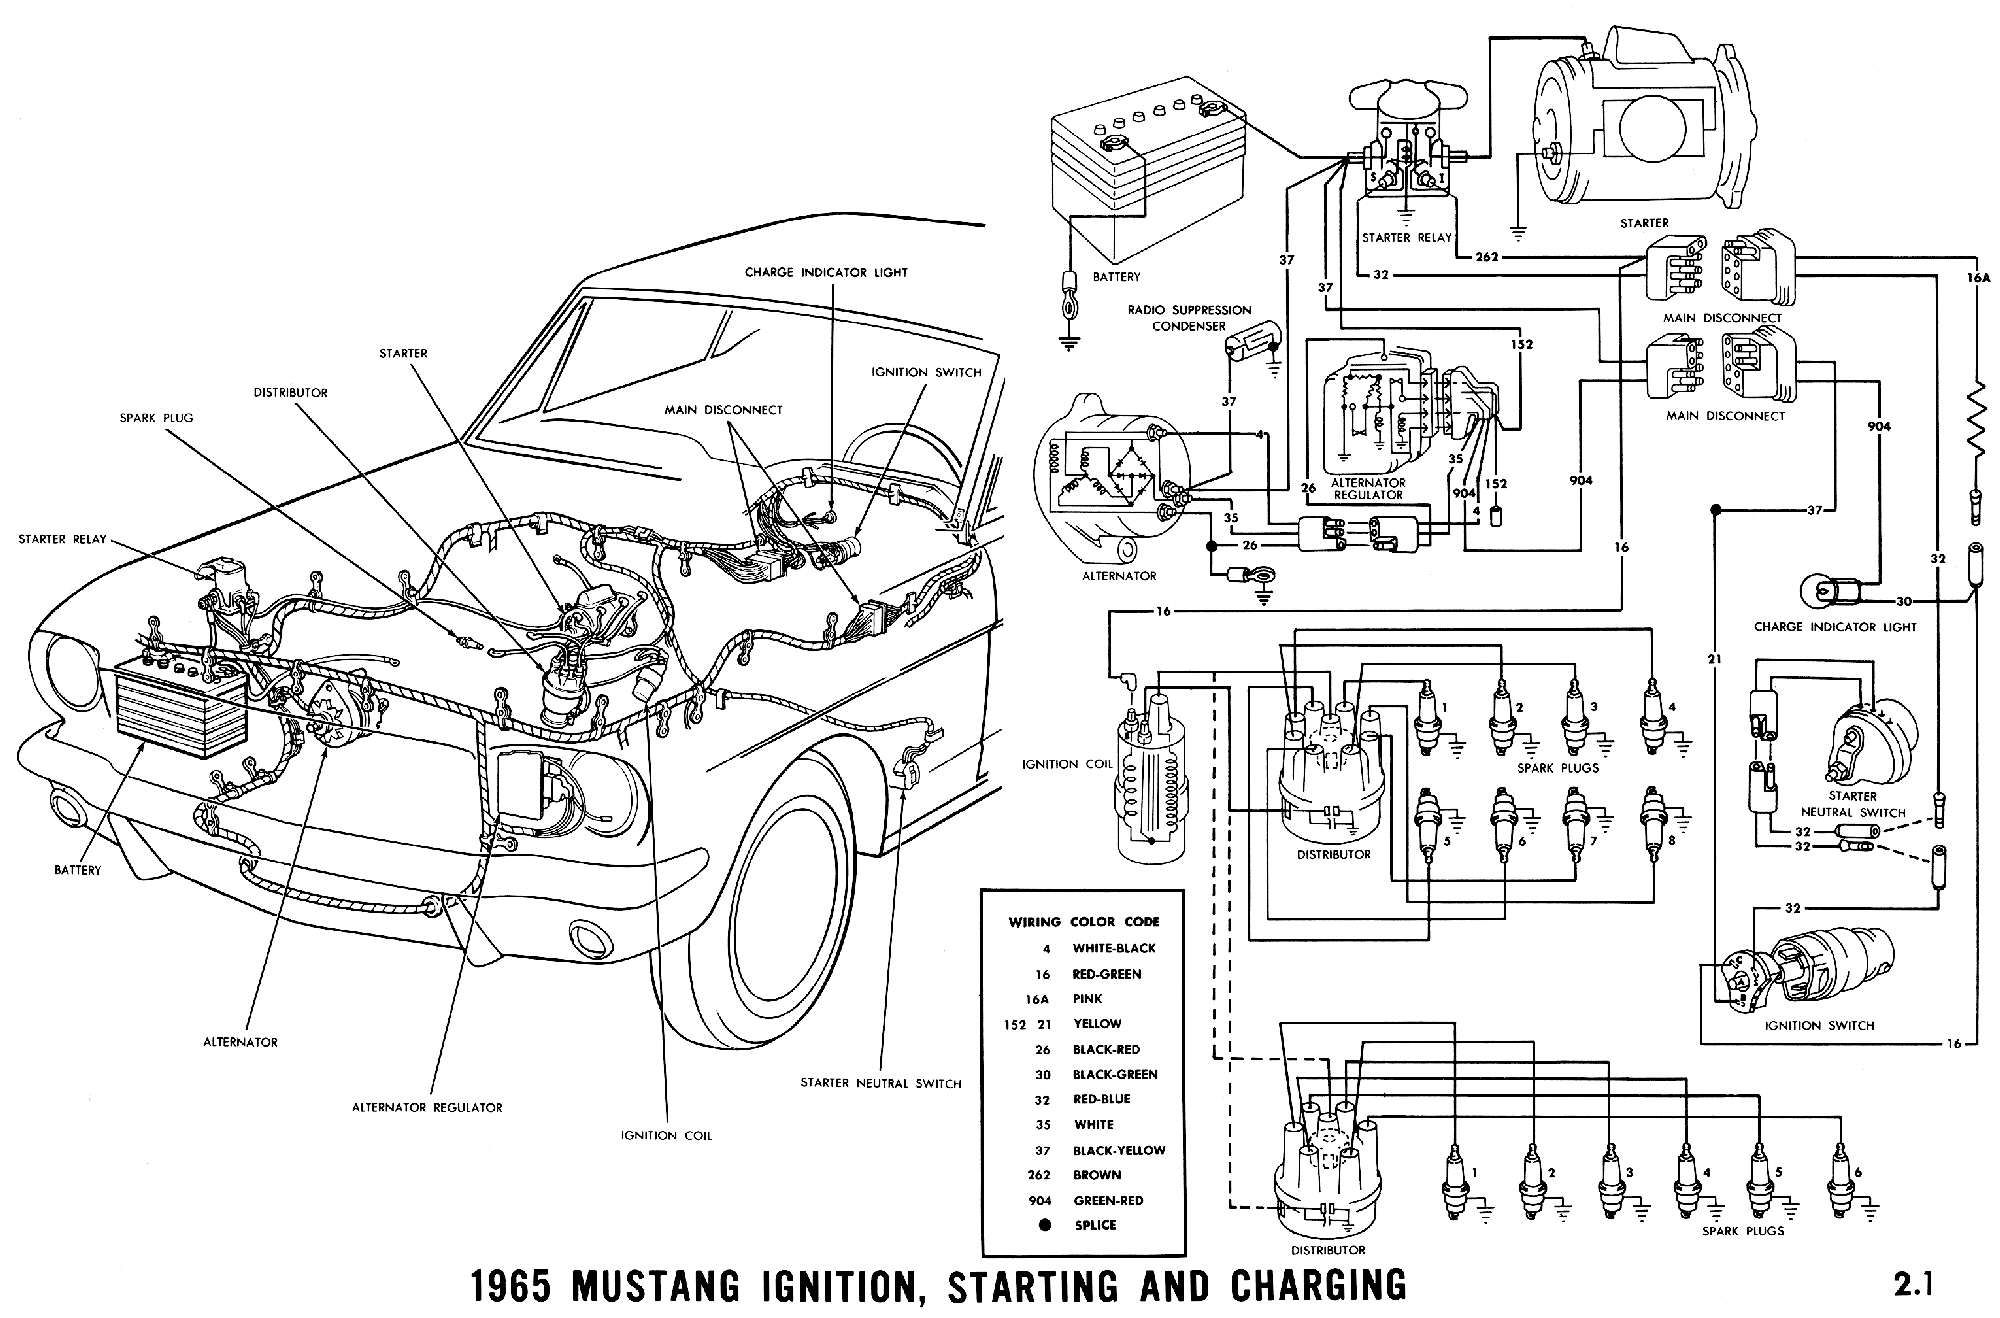 small resolution of 1967 mustang wiring harness wiring diagram operations 1967 mustang wiring harness diagram 1967 mustang wiring harness